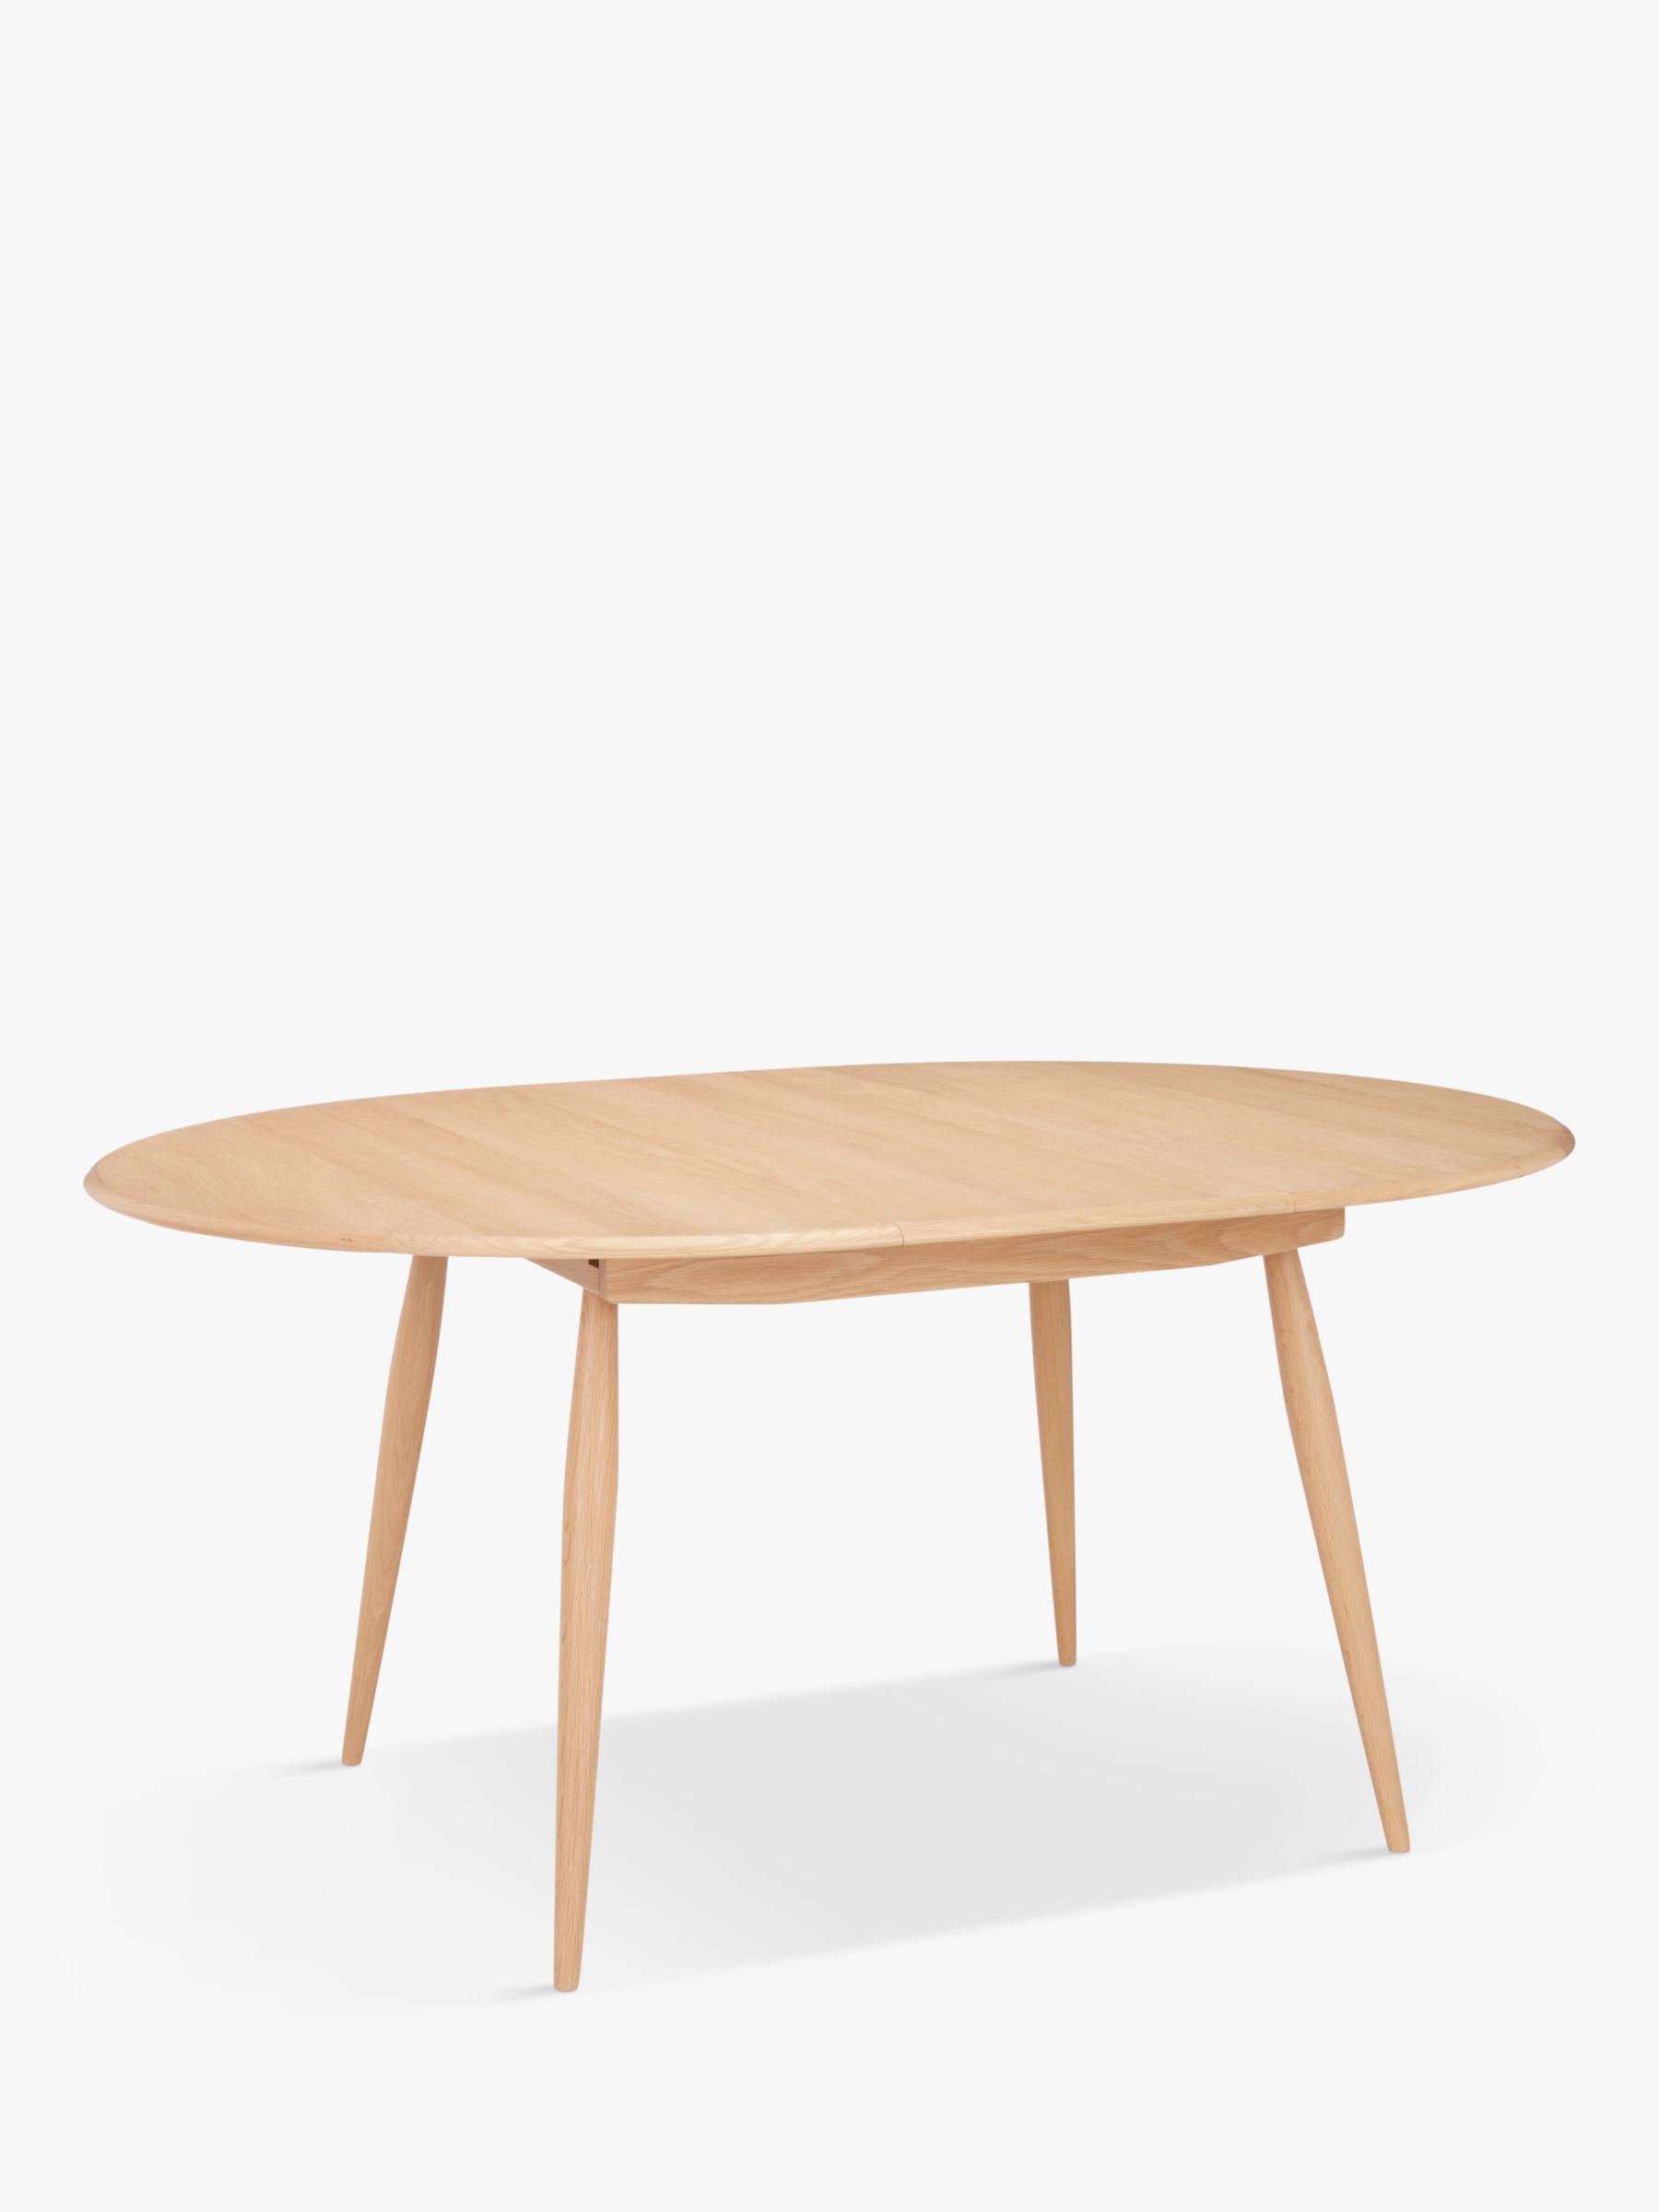 Extending Dining Tables John Lewis